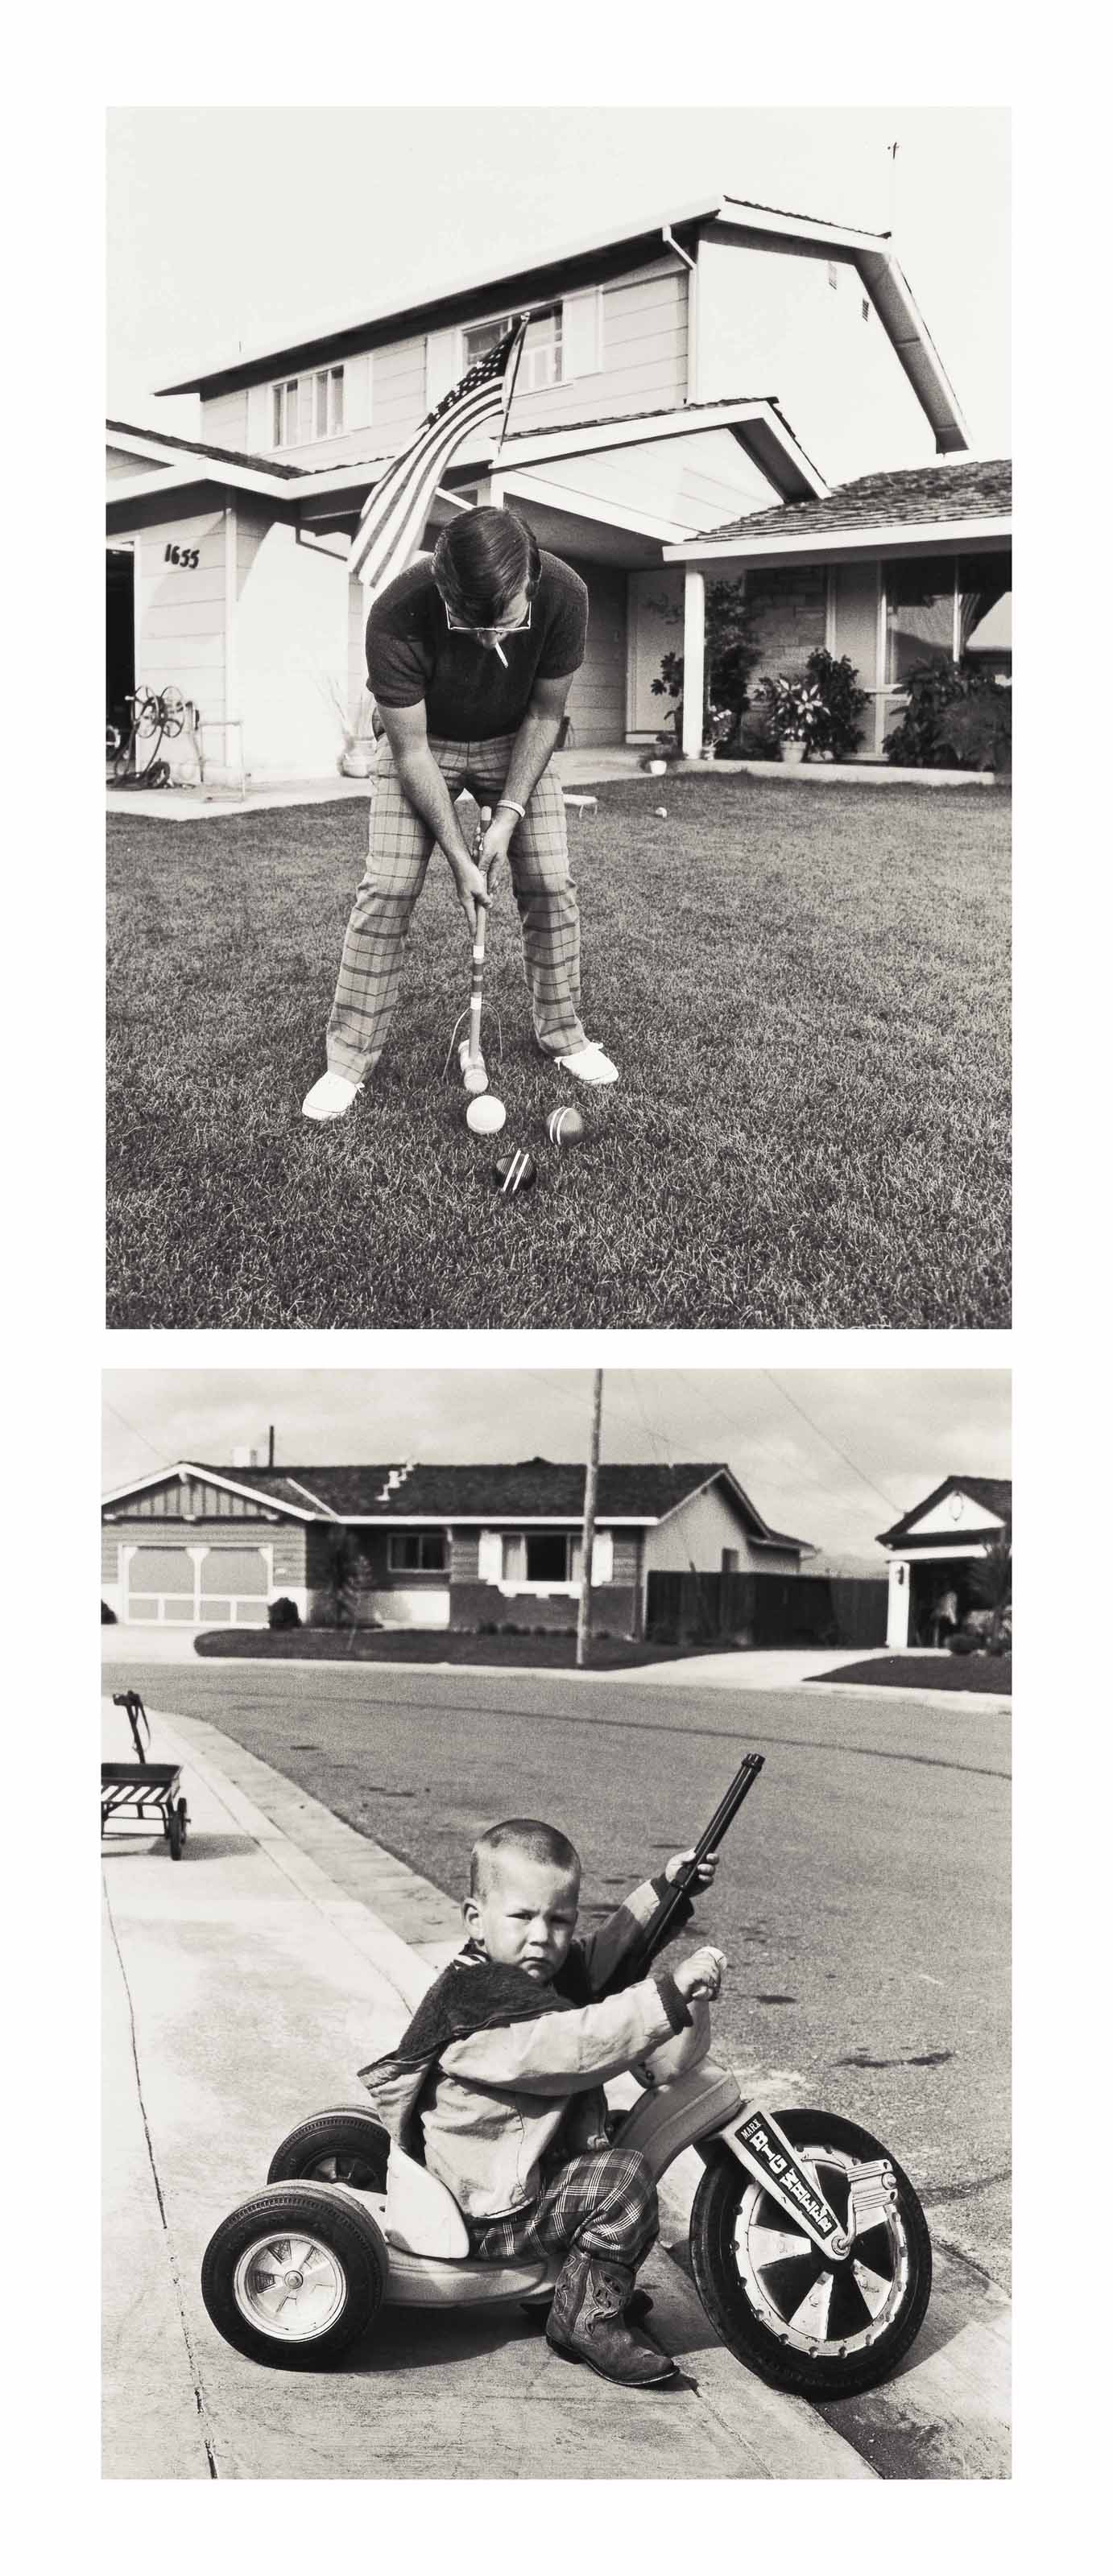 I don't feel that Richie playing with guns will have a negative effect on his personality from 'Suburbia', 1973; I only play croquet once a year on the Fourth of July. The rest of the day we spend at the neighbor's pool drinking beer from 'Leisure', 2004